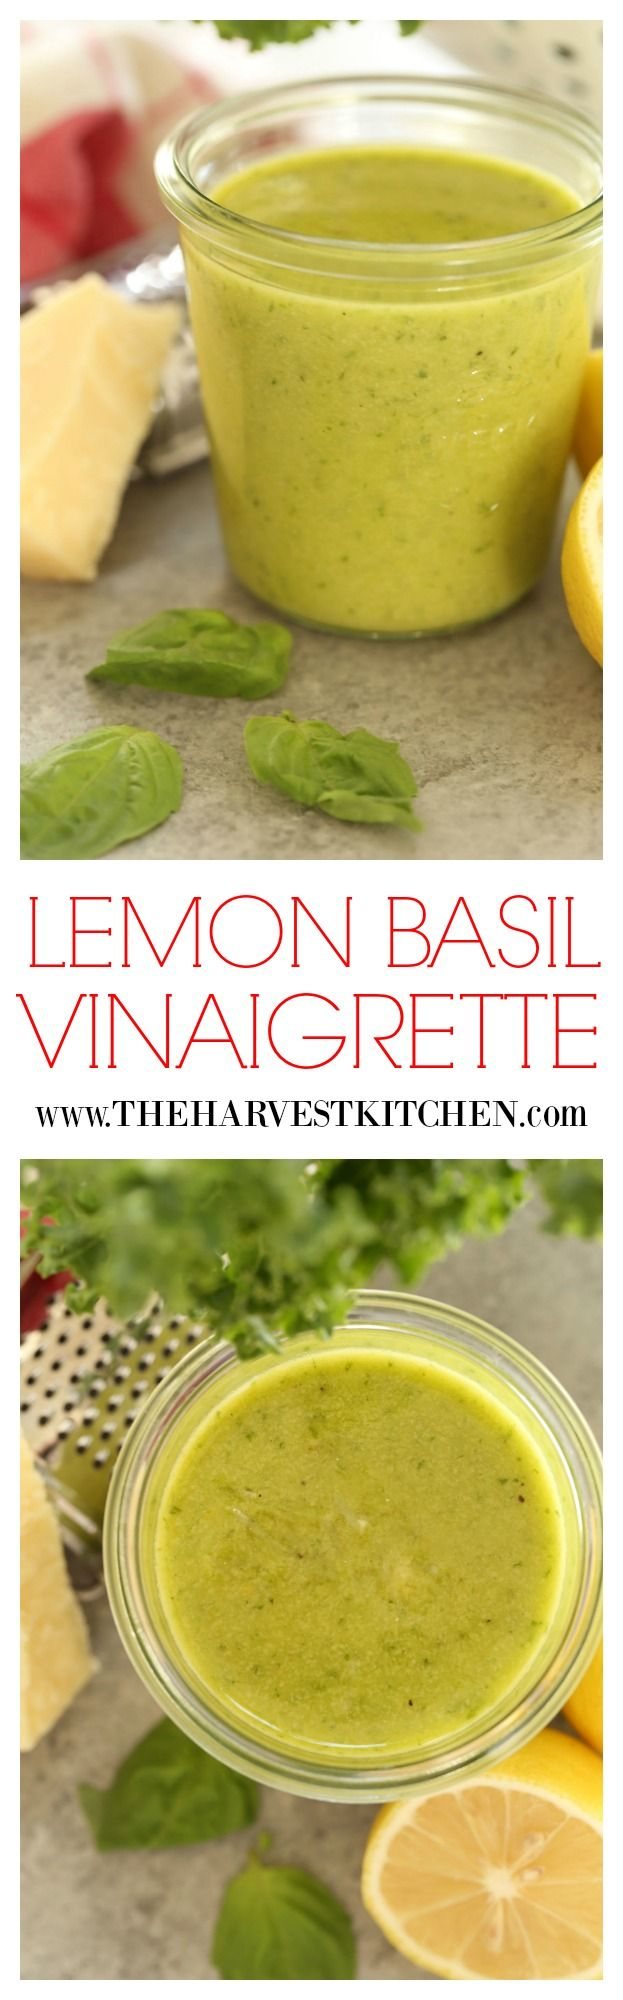 This Lemon Basil Vinaigrette is completely addicting!  It's quick and easy, fresh and delicious, and it's perfect on your favorite salad fix-ins.   | healthy recipes | | healthy salad   recipes | | healthy salad dressings |